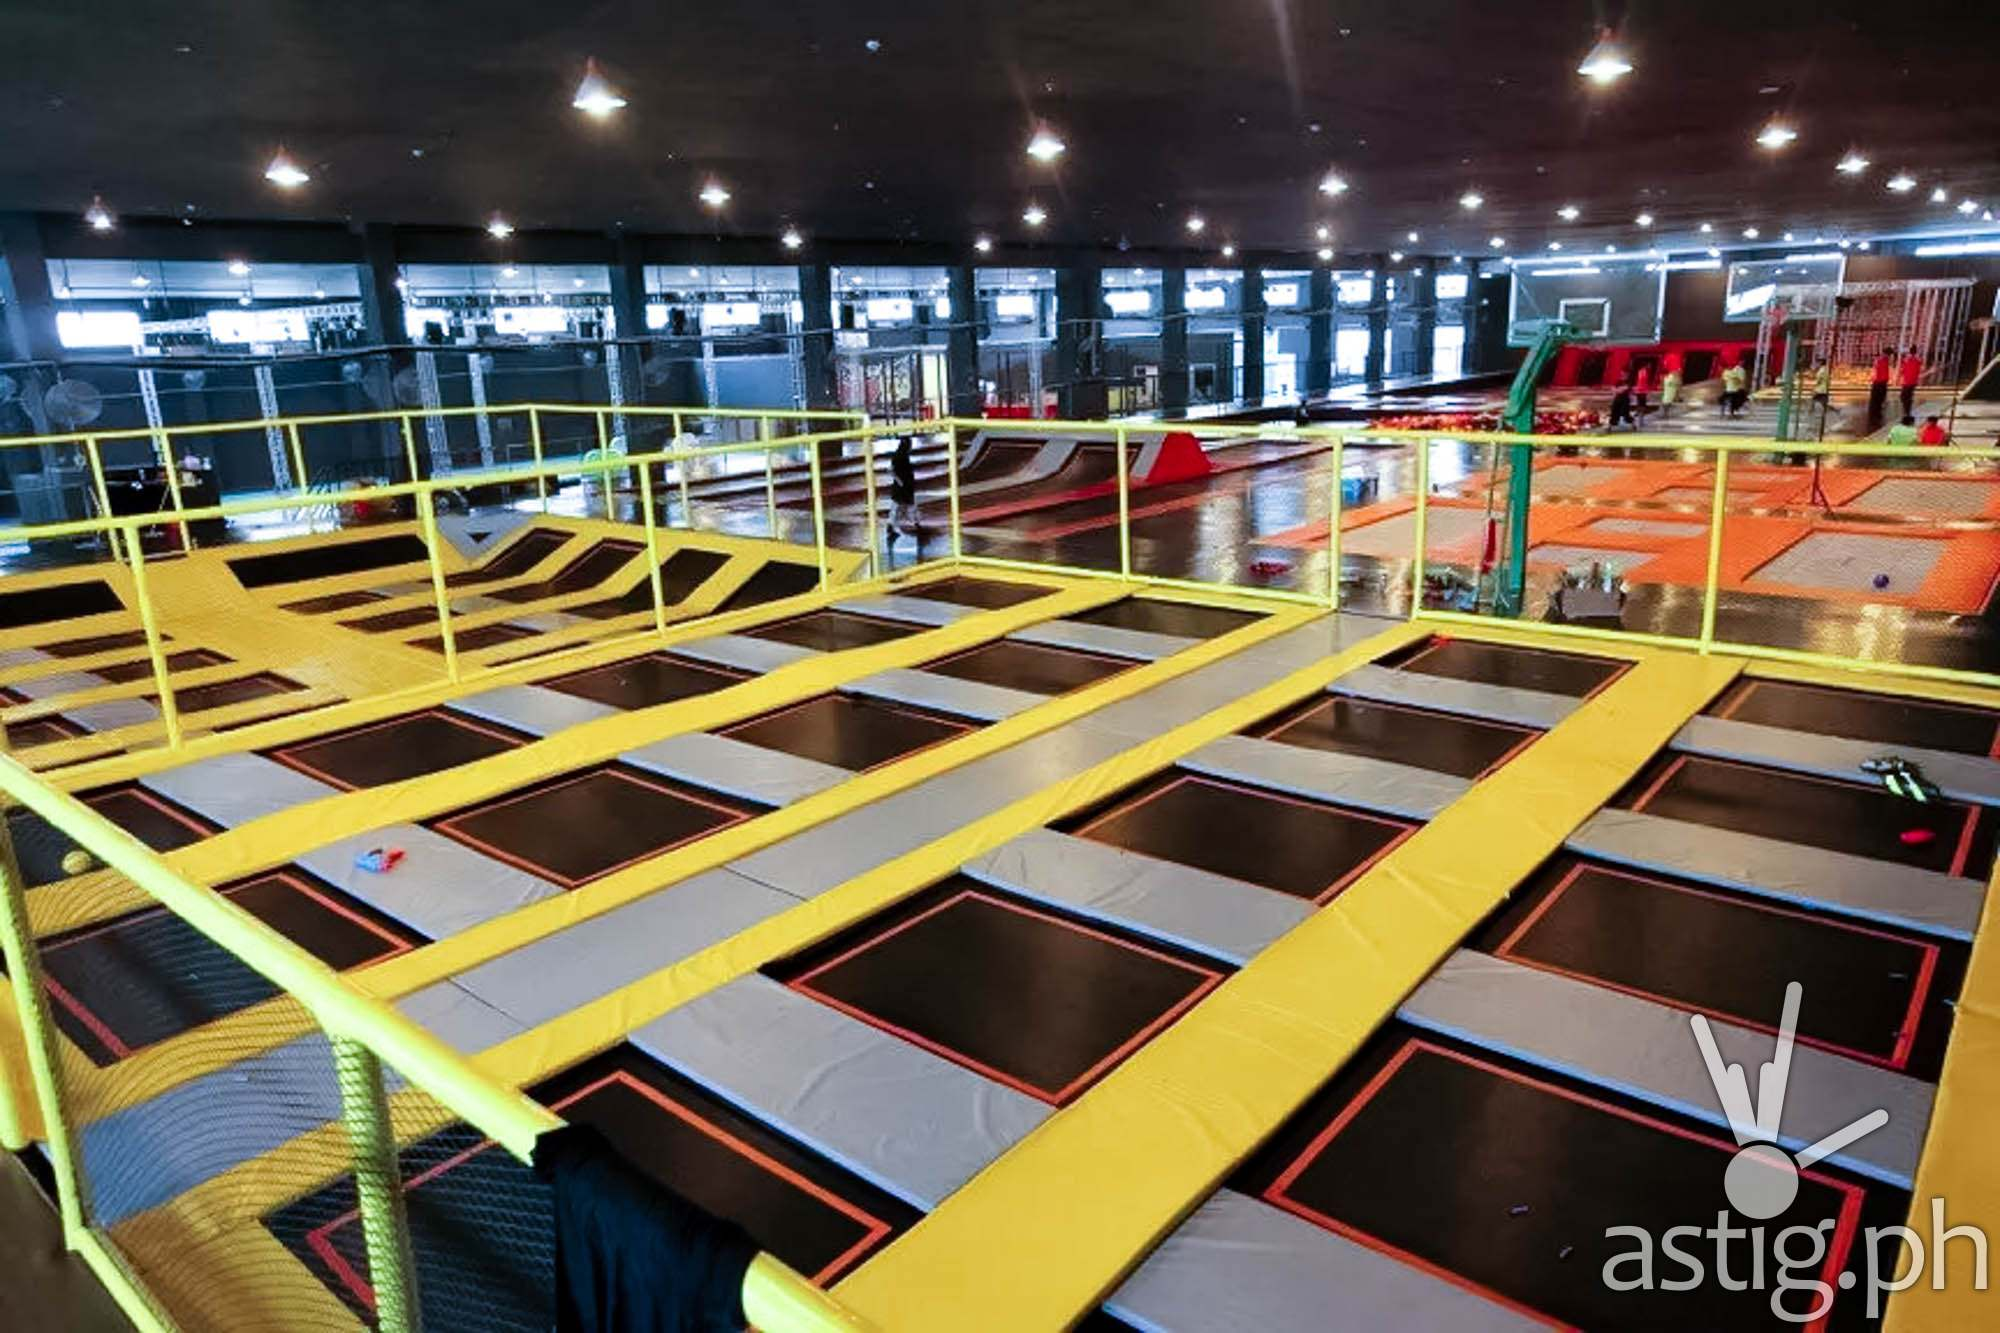 trampoline park philippines 39 first flying adventure to open in mandaluyong video astig ph. Black Bedroom Furniture Sets. Home Design Ideas